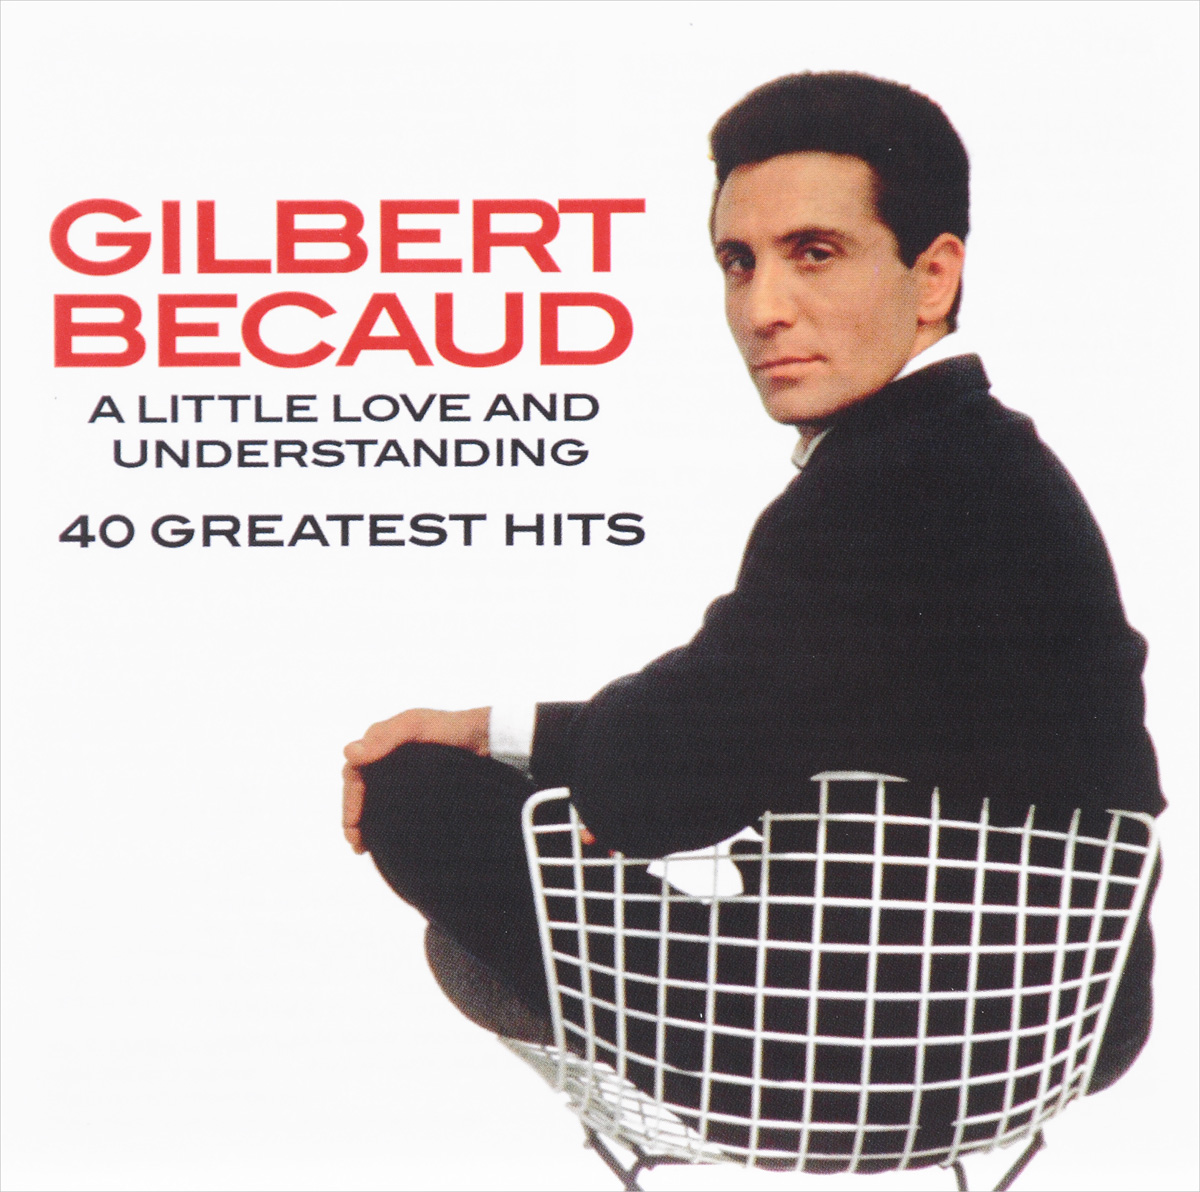 Жильбер Беко Gilbert Becaud. A Little Love And Understanding: 40 Greatest Hits (2 CD) кэрри андервуд carrie underwood greatest hits decade 1 2 cd